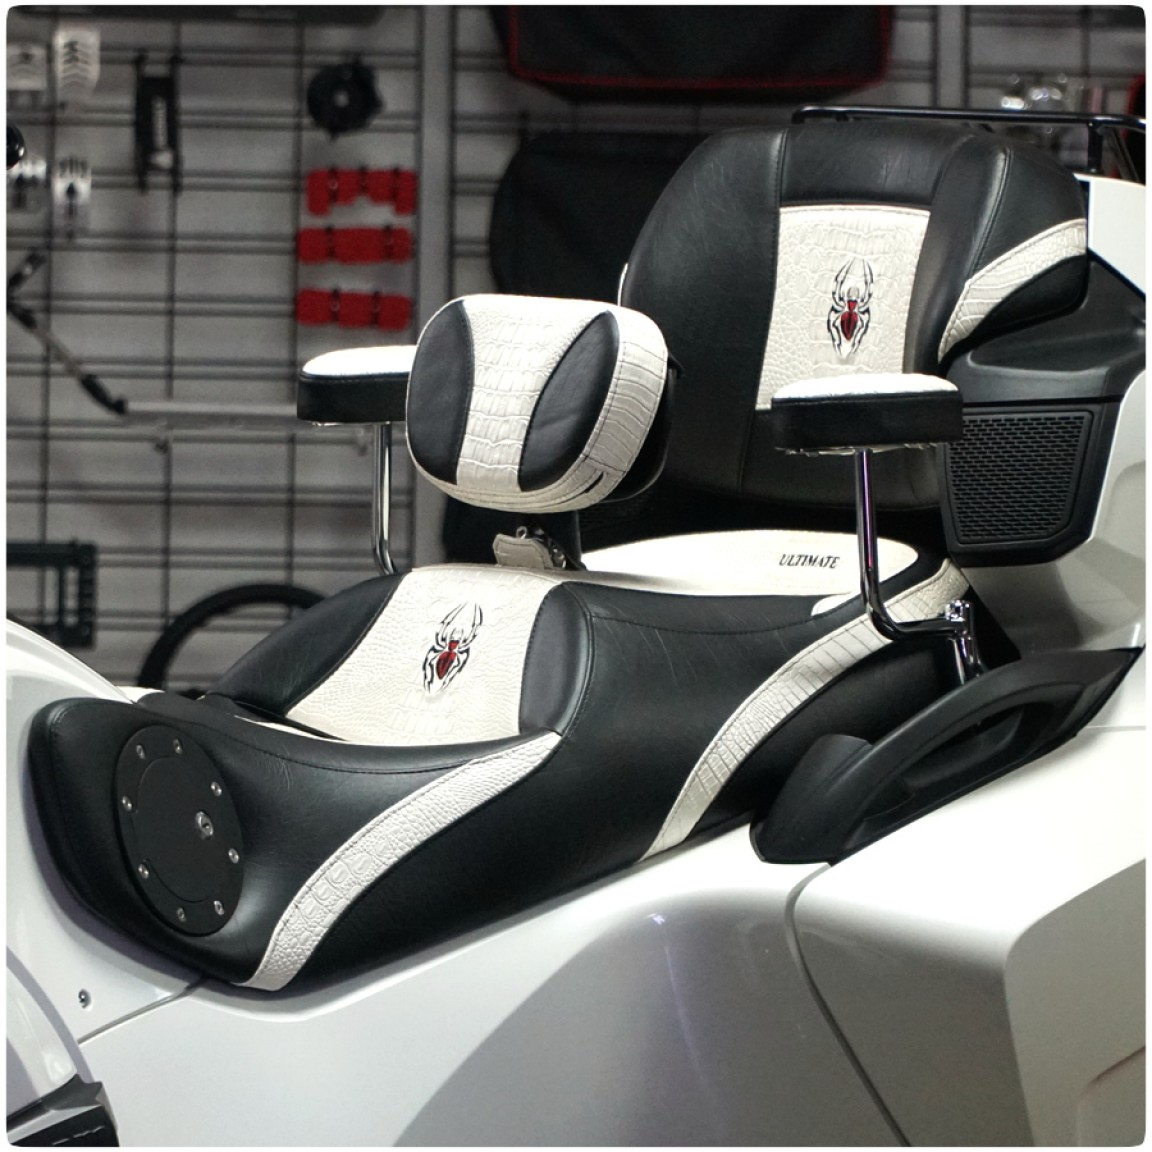 Ultimate Seats Online Custom Seat Builder for the Can-Am Spyder RT (2010-19)